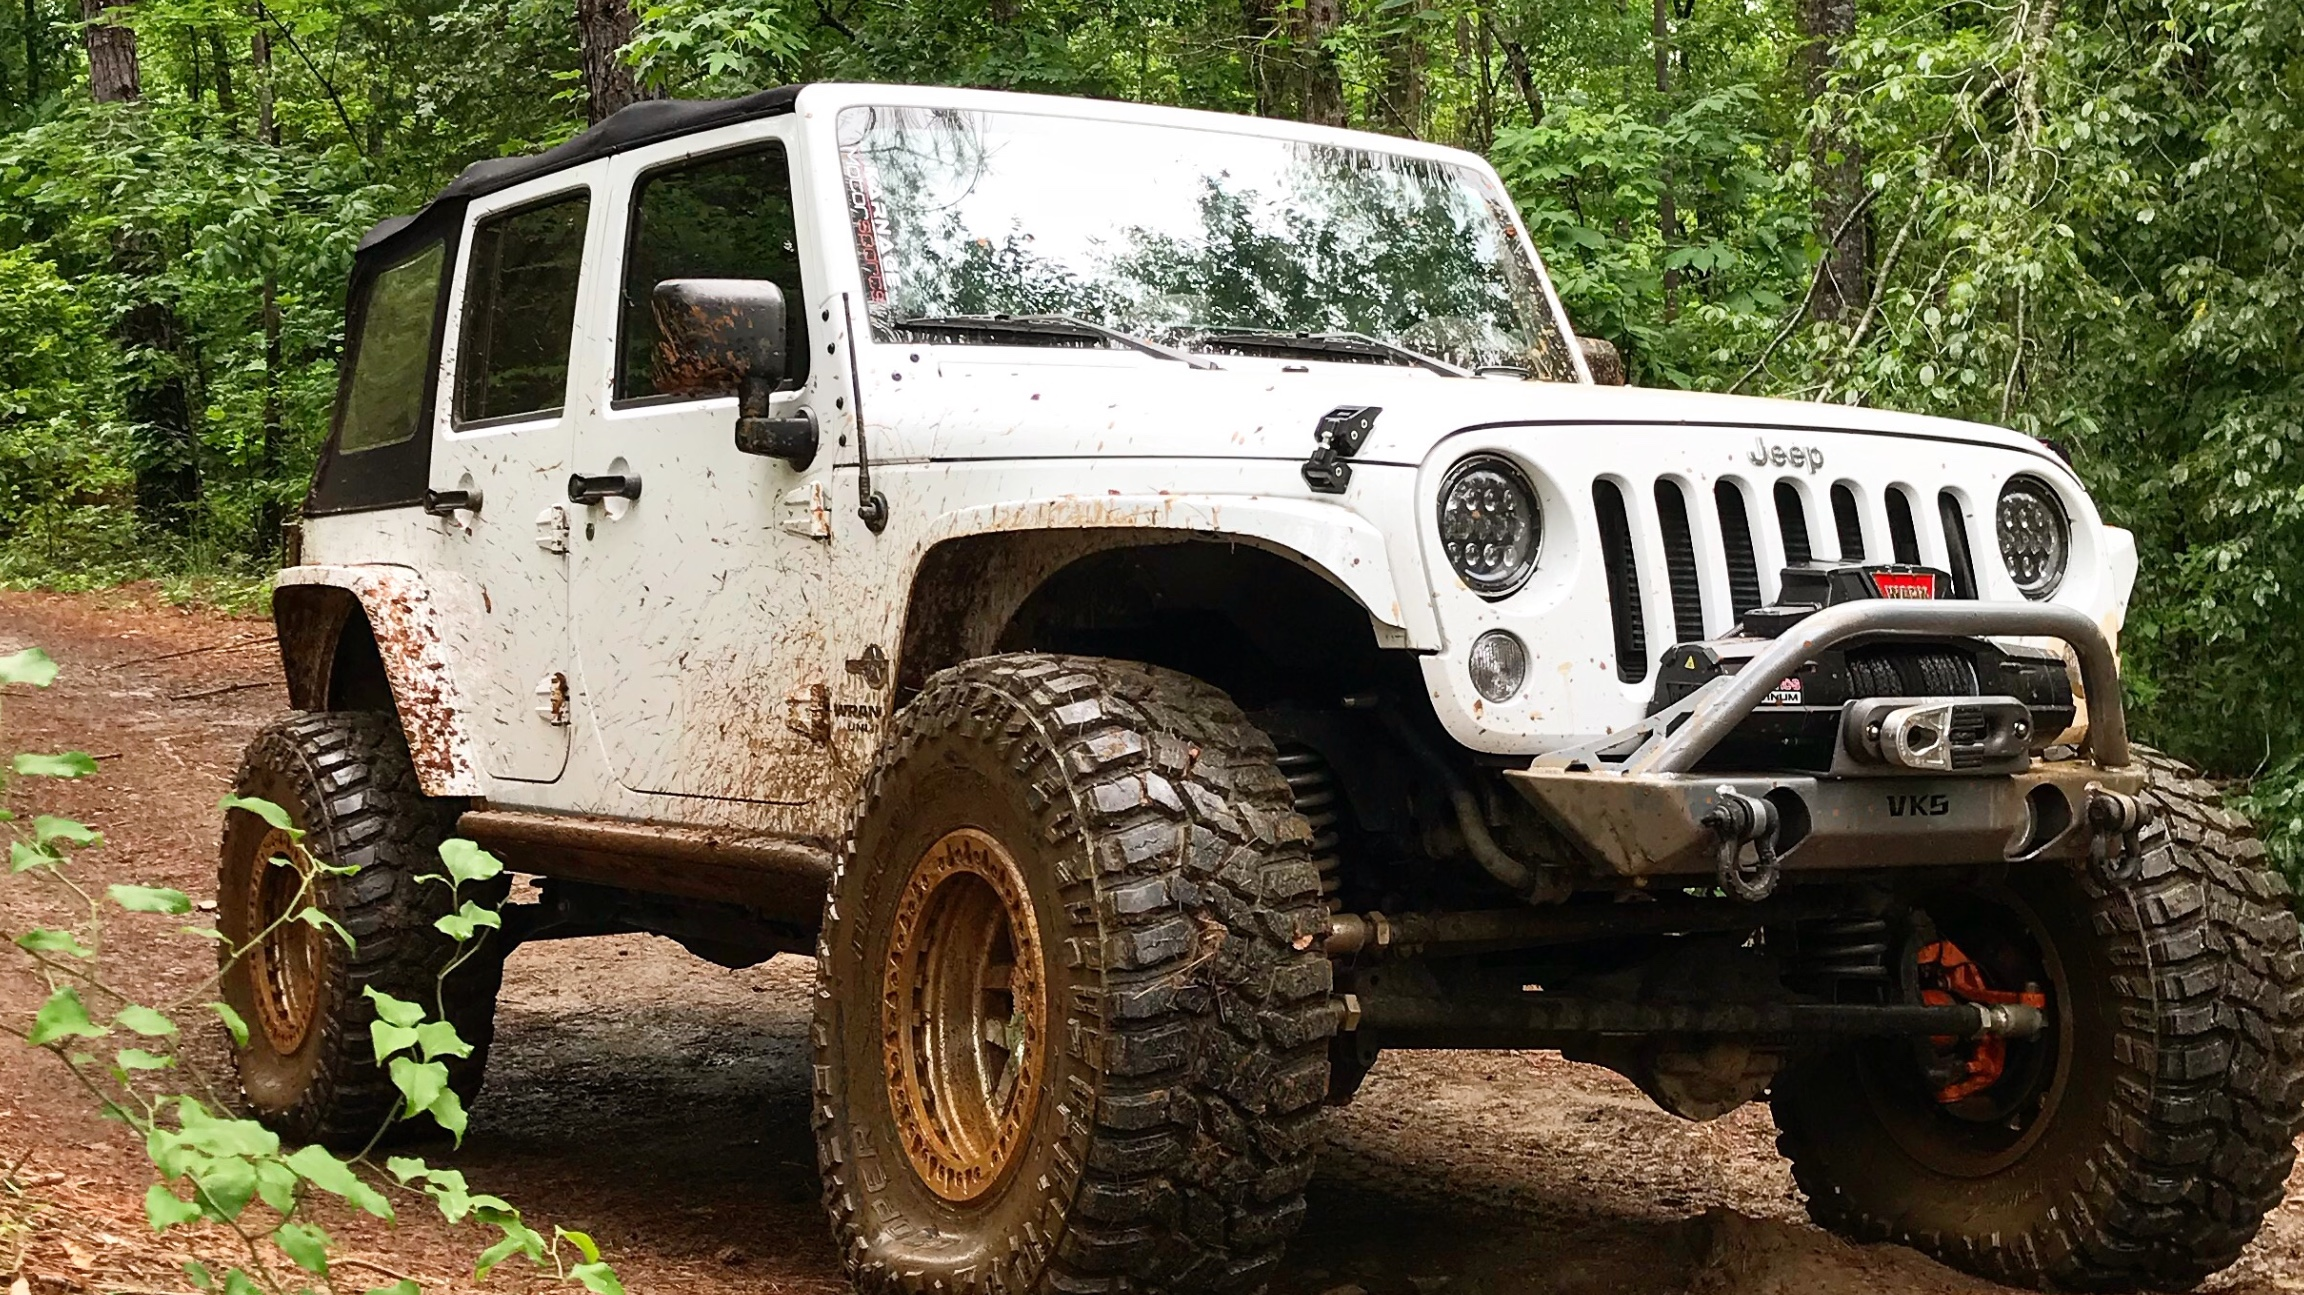 2013 Jeep Wrangler JK Unlimited